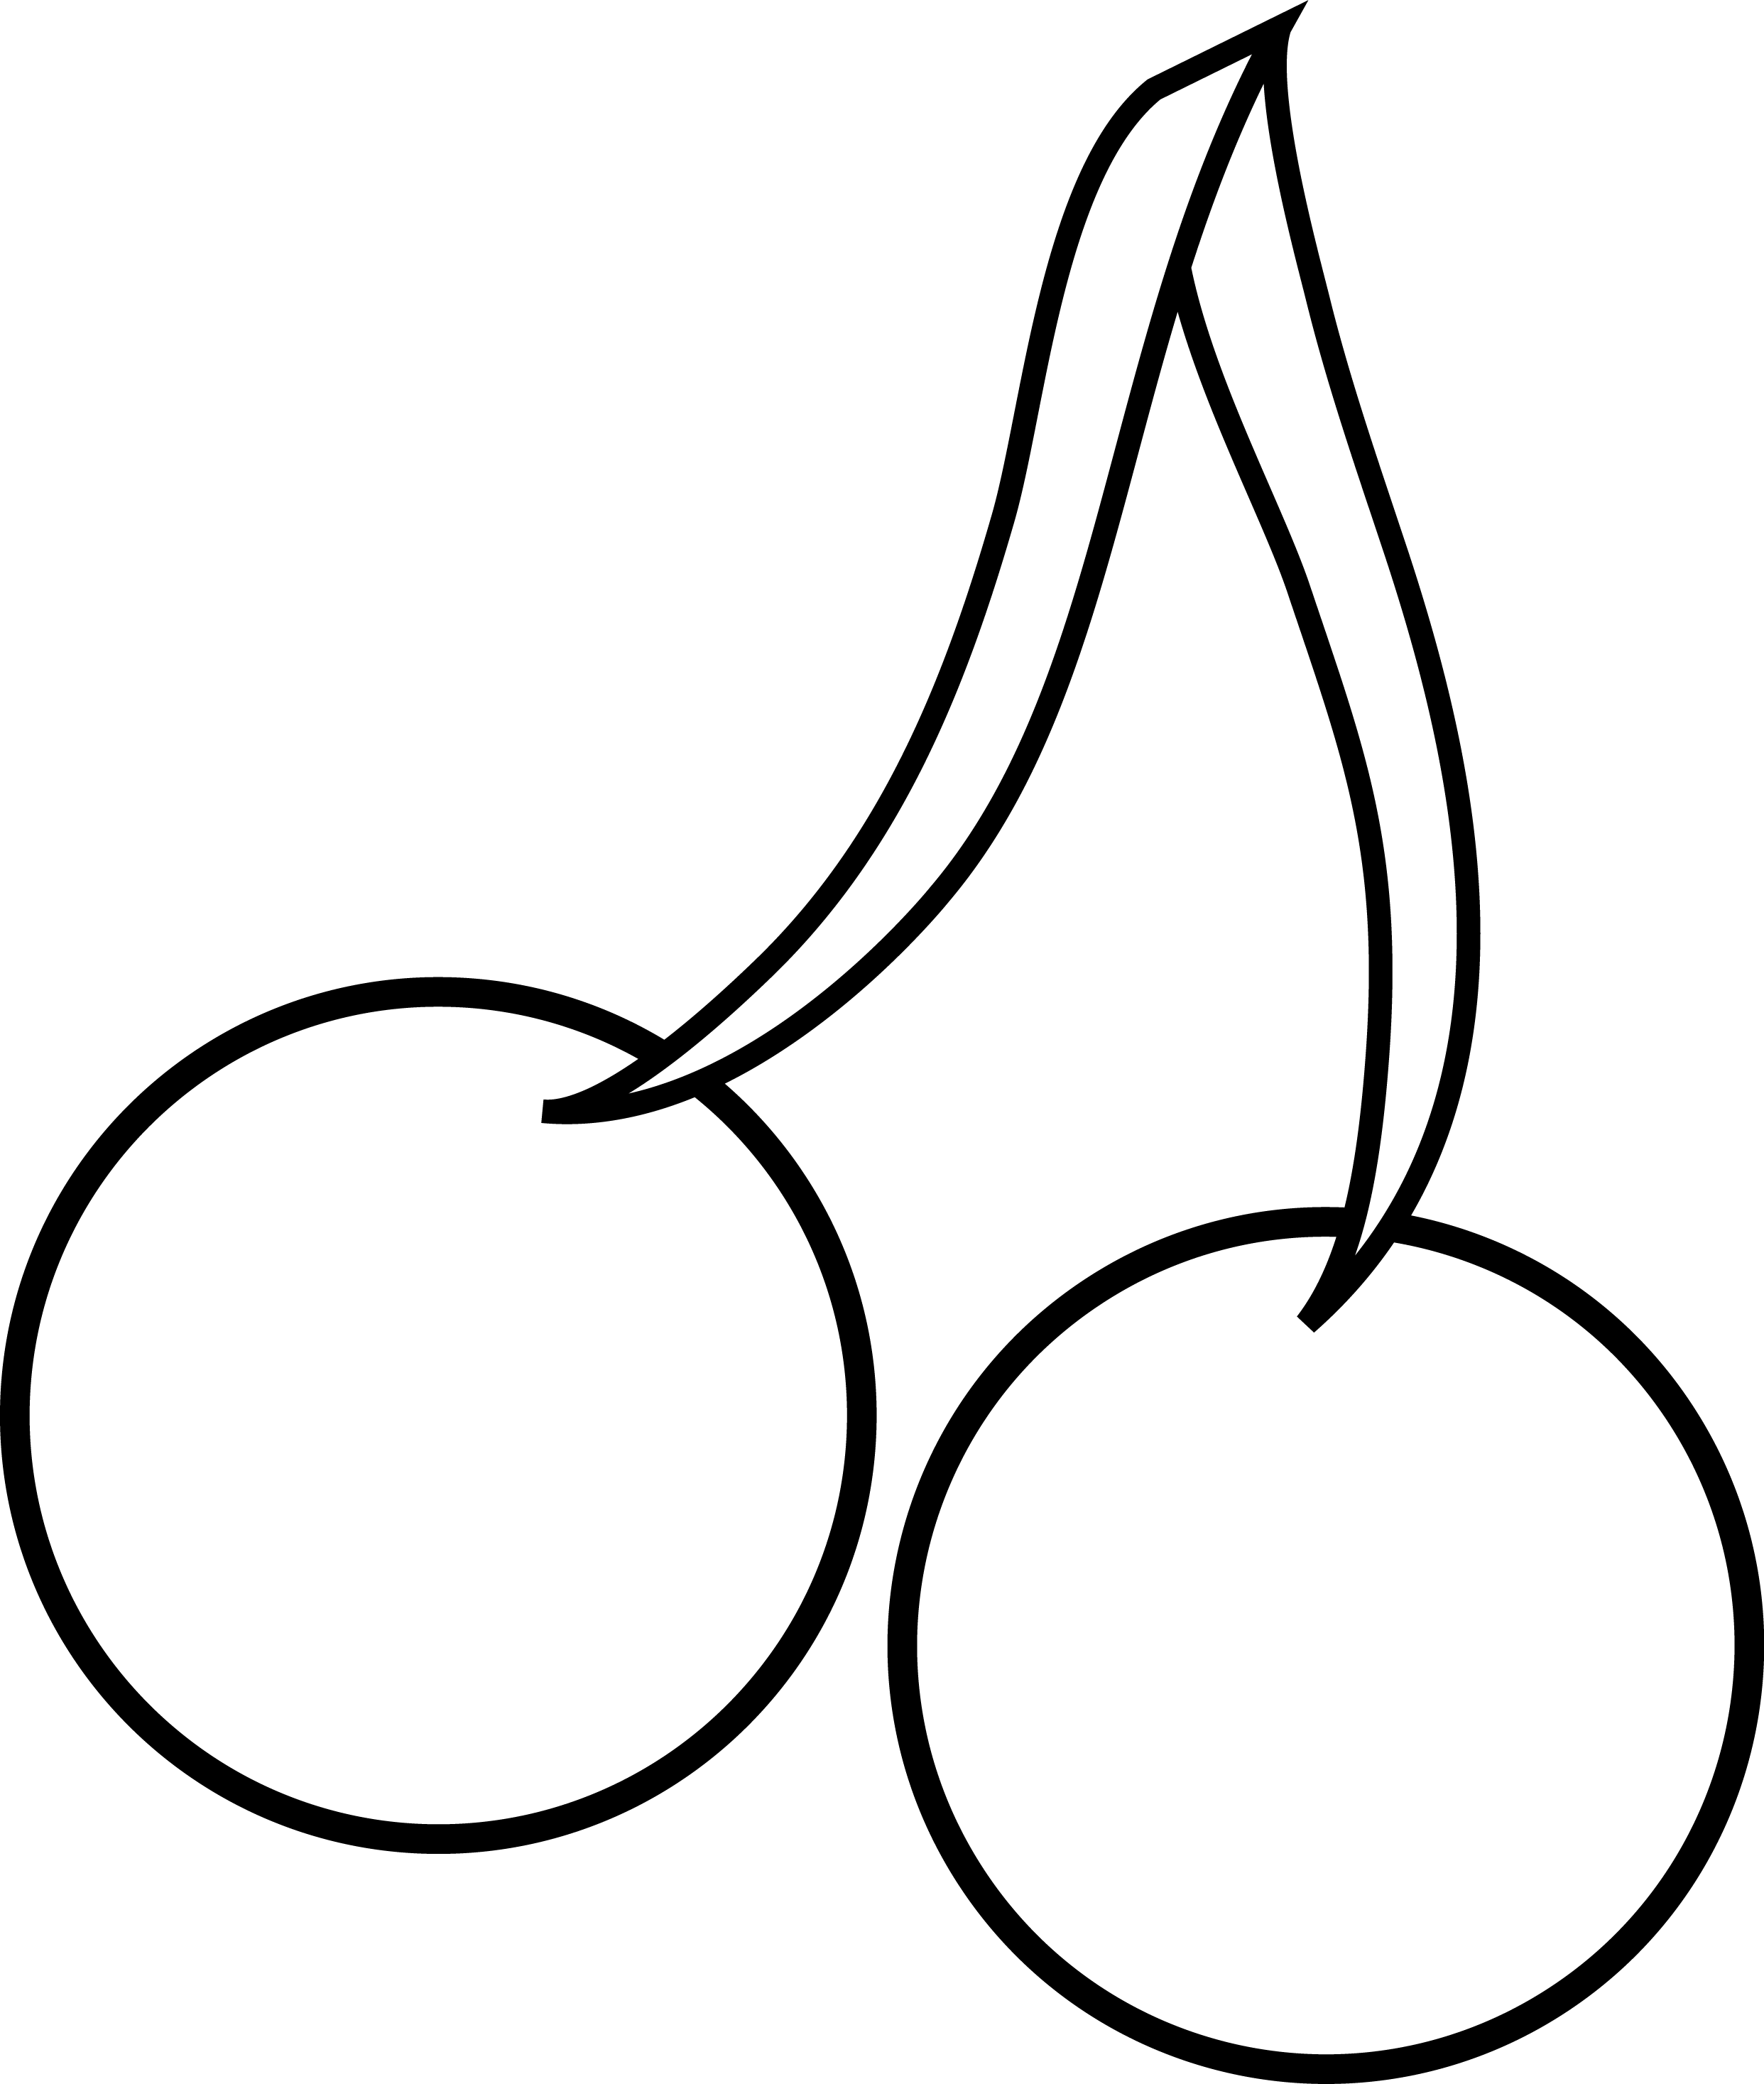 Two cherries clipart outline.